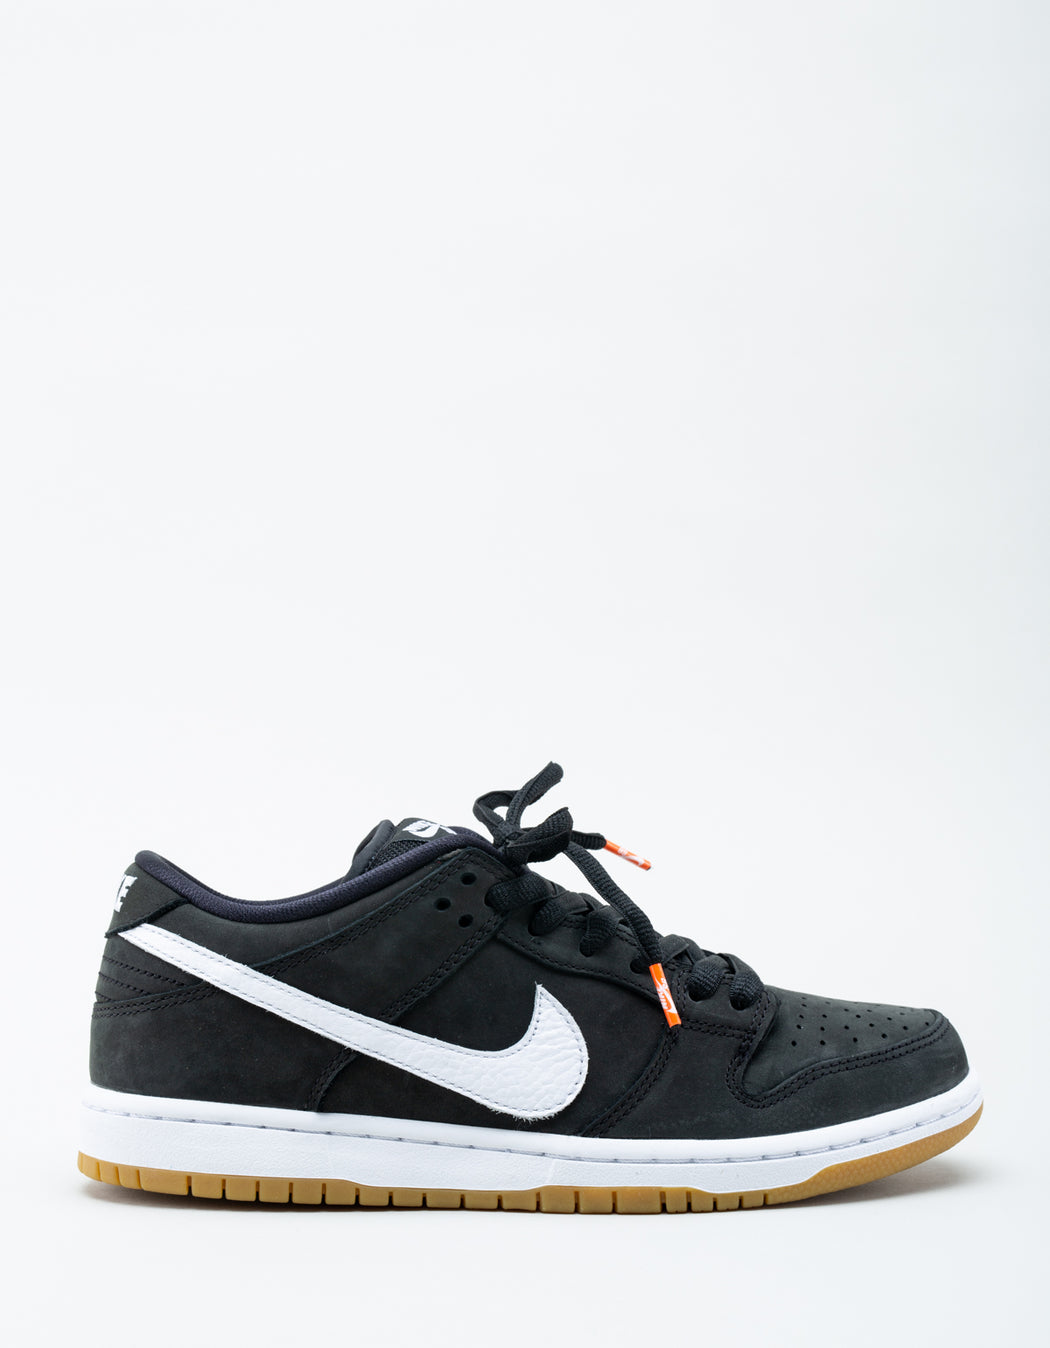 brand new e3ee2 6c6f3 Nike SB Orange Label Dunk Low Pro ISO Black ...